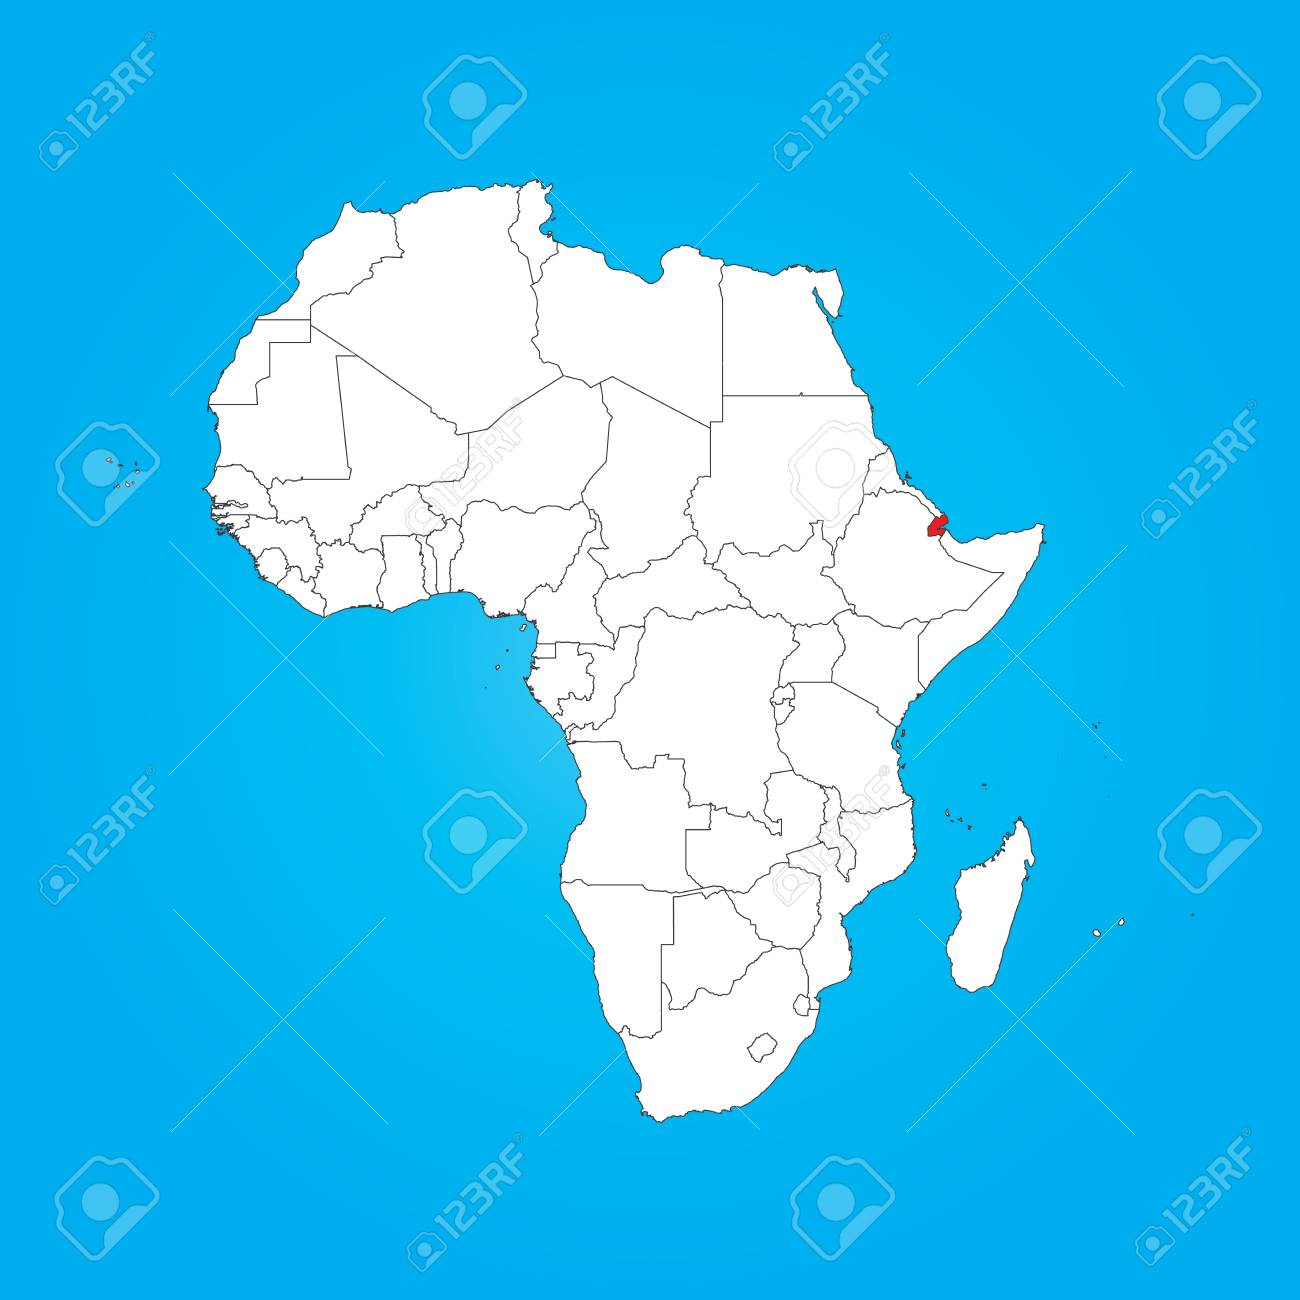 Map Of Africa Djibouti.A Map Of Africa With A Selected Country Of Djibouti